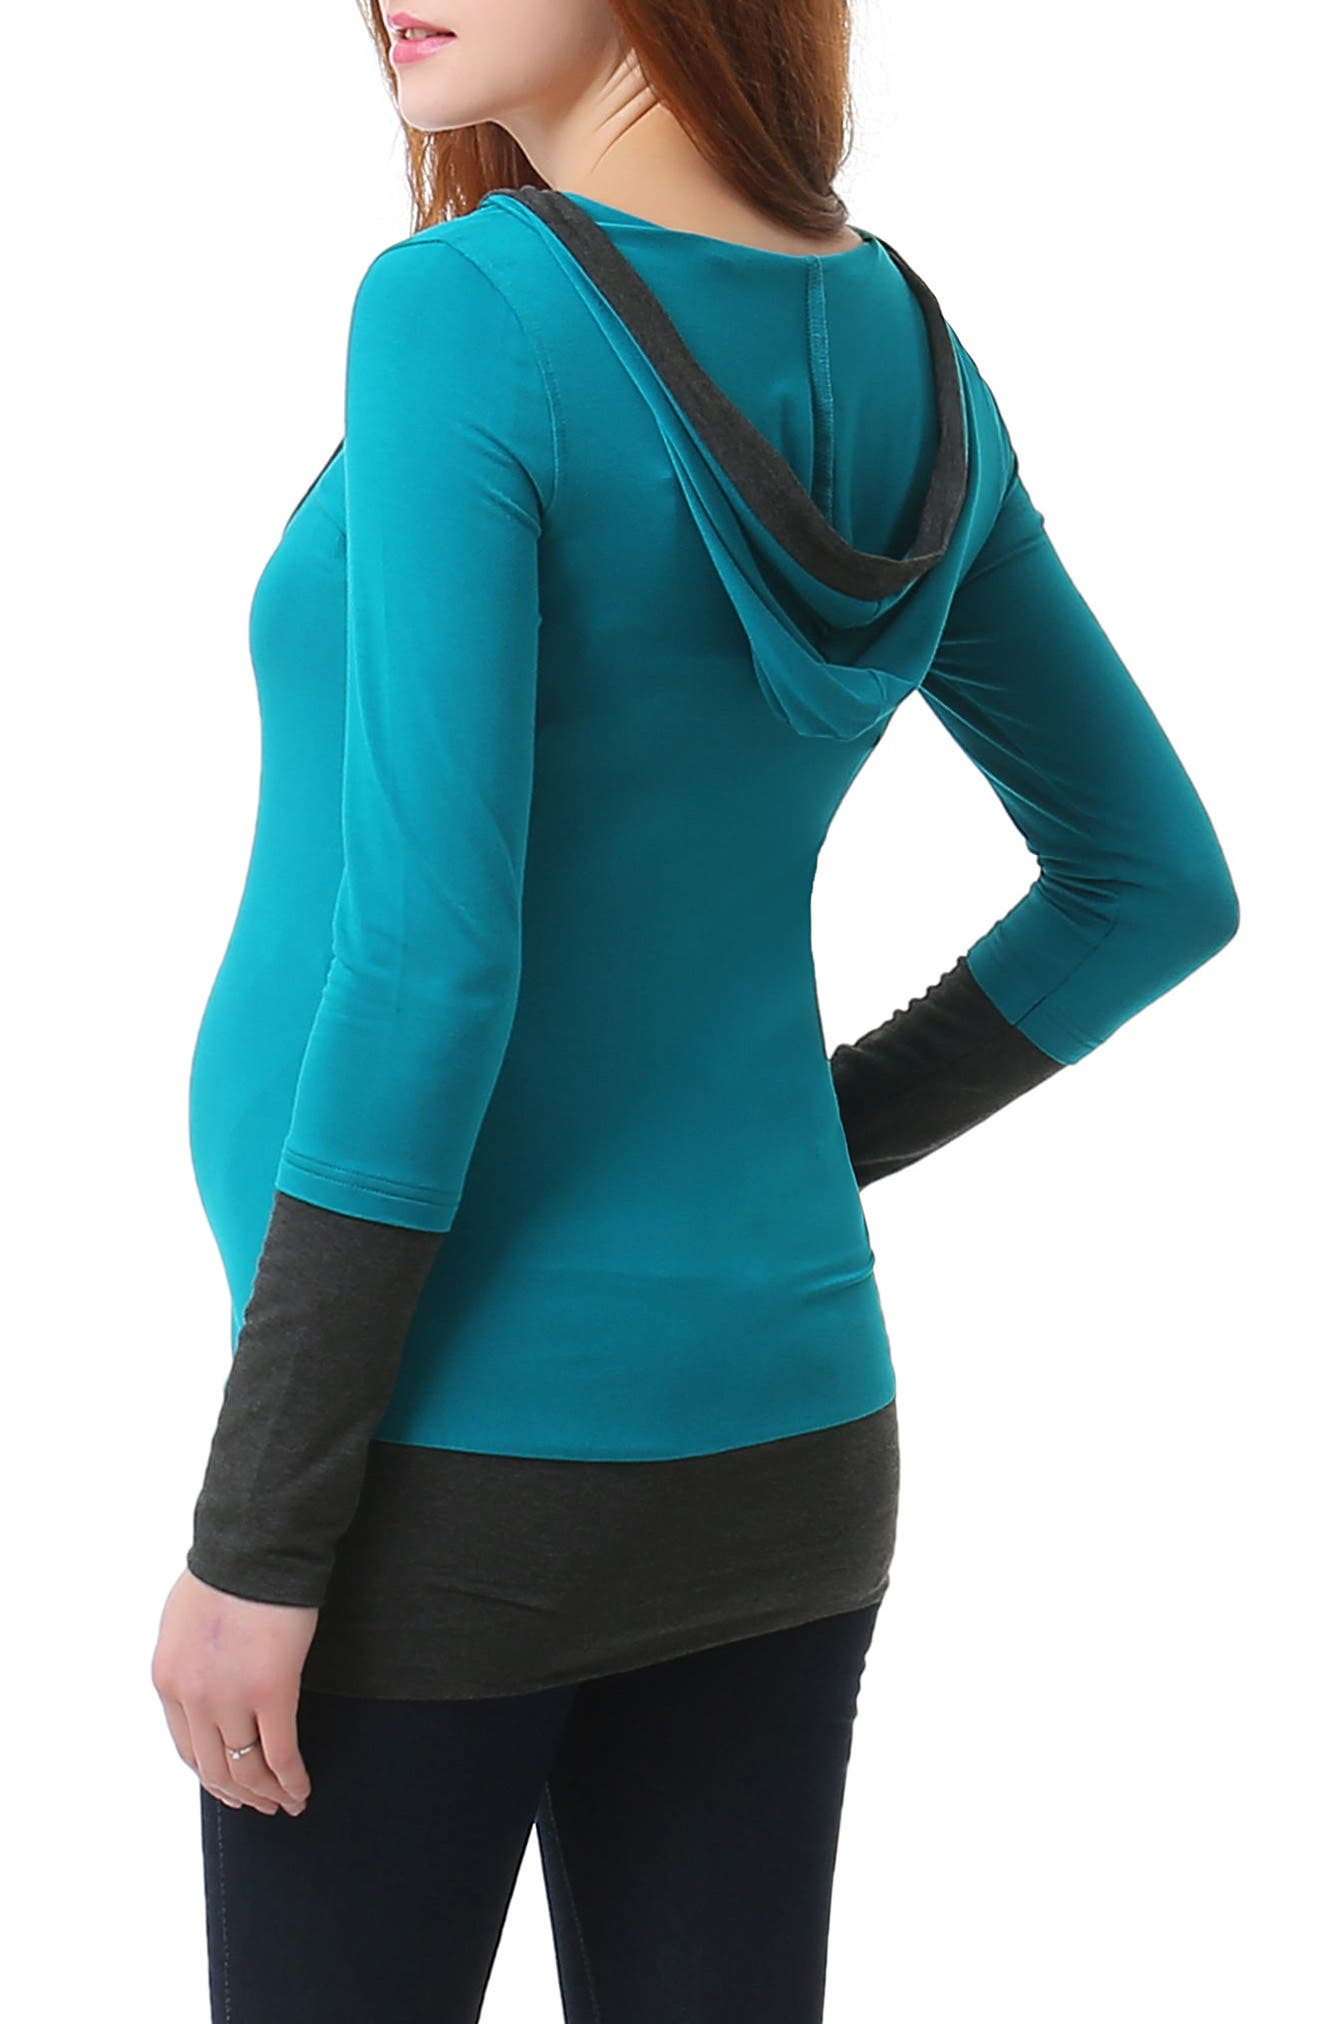 Willow Hooded Maternity Top,                             Alternate thumbnail 2, color,                             Teal